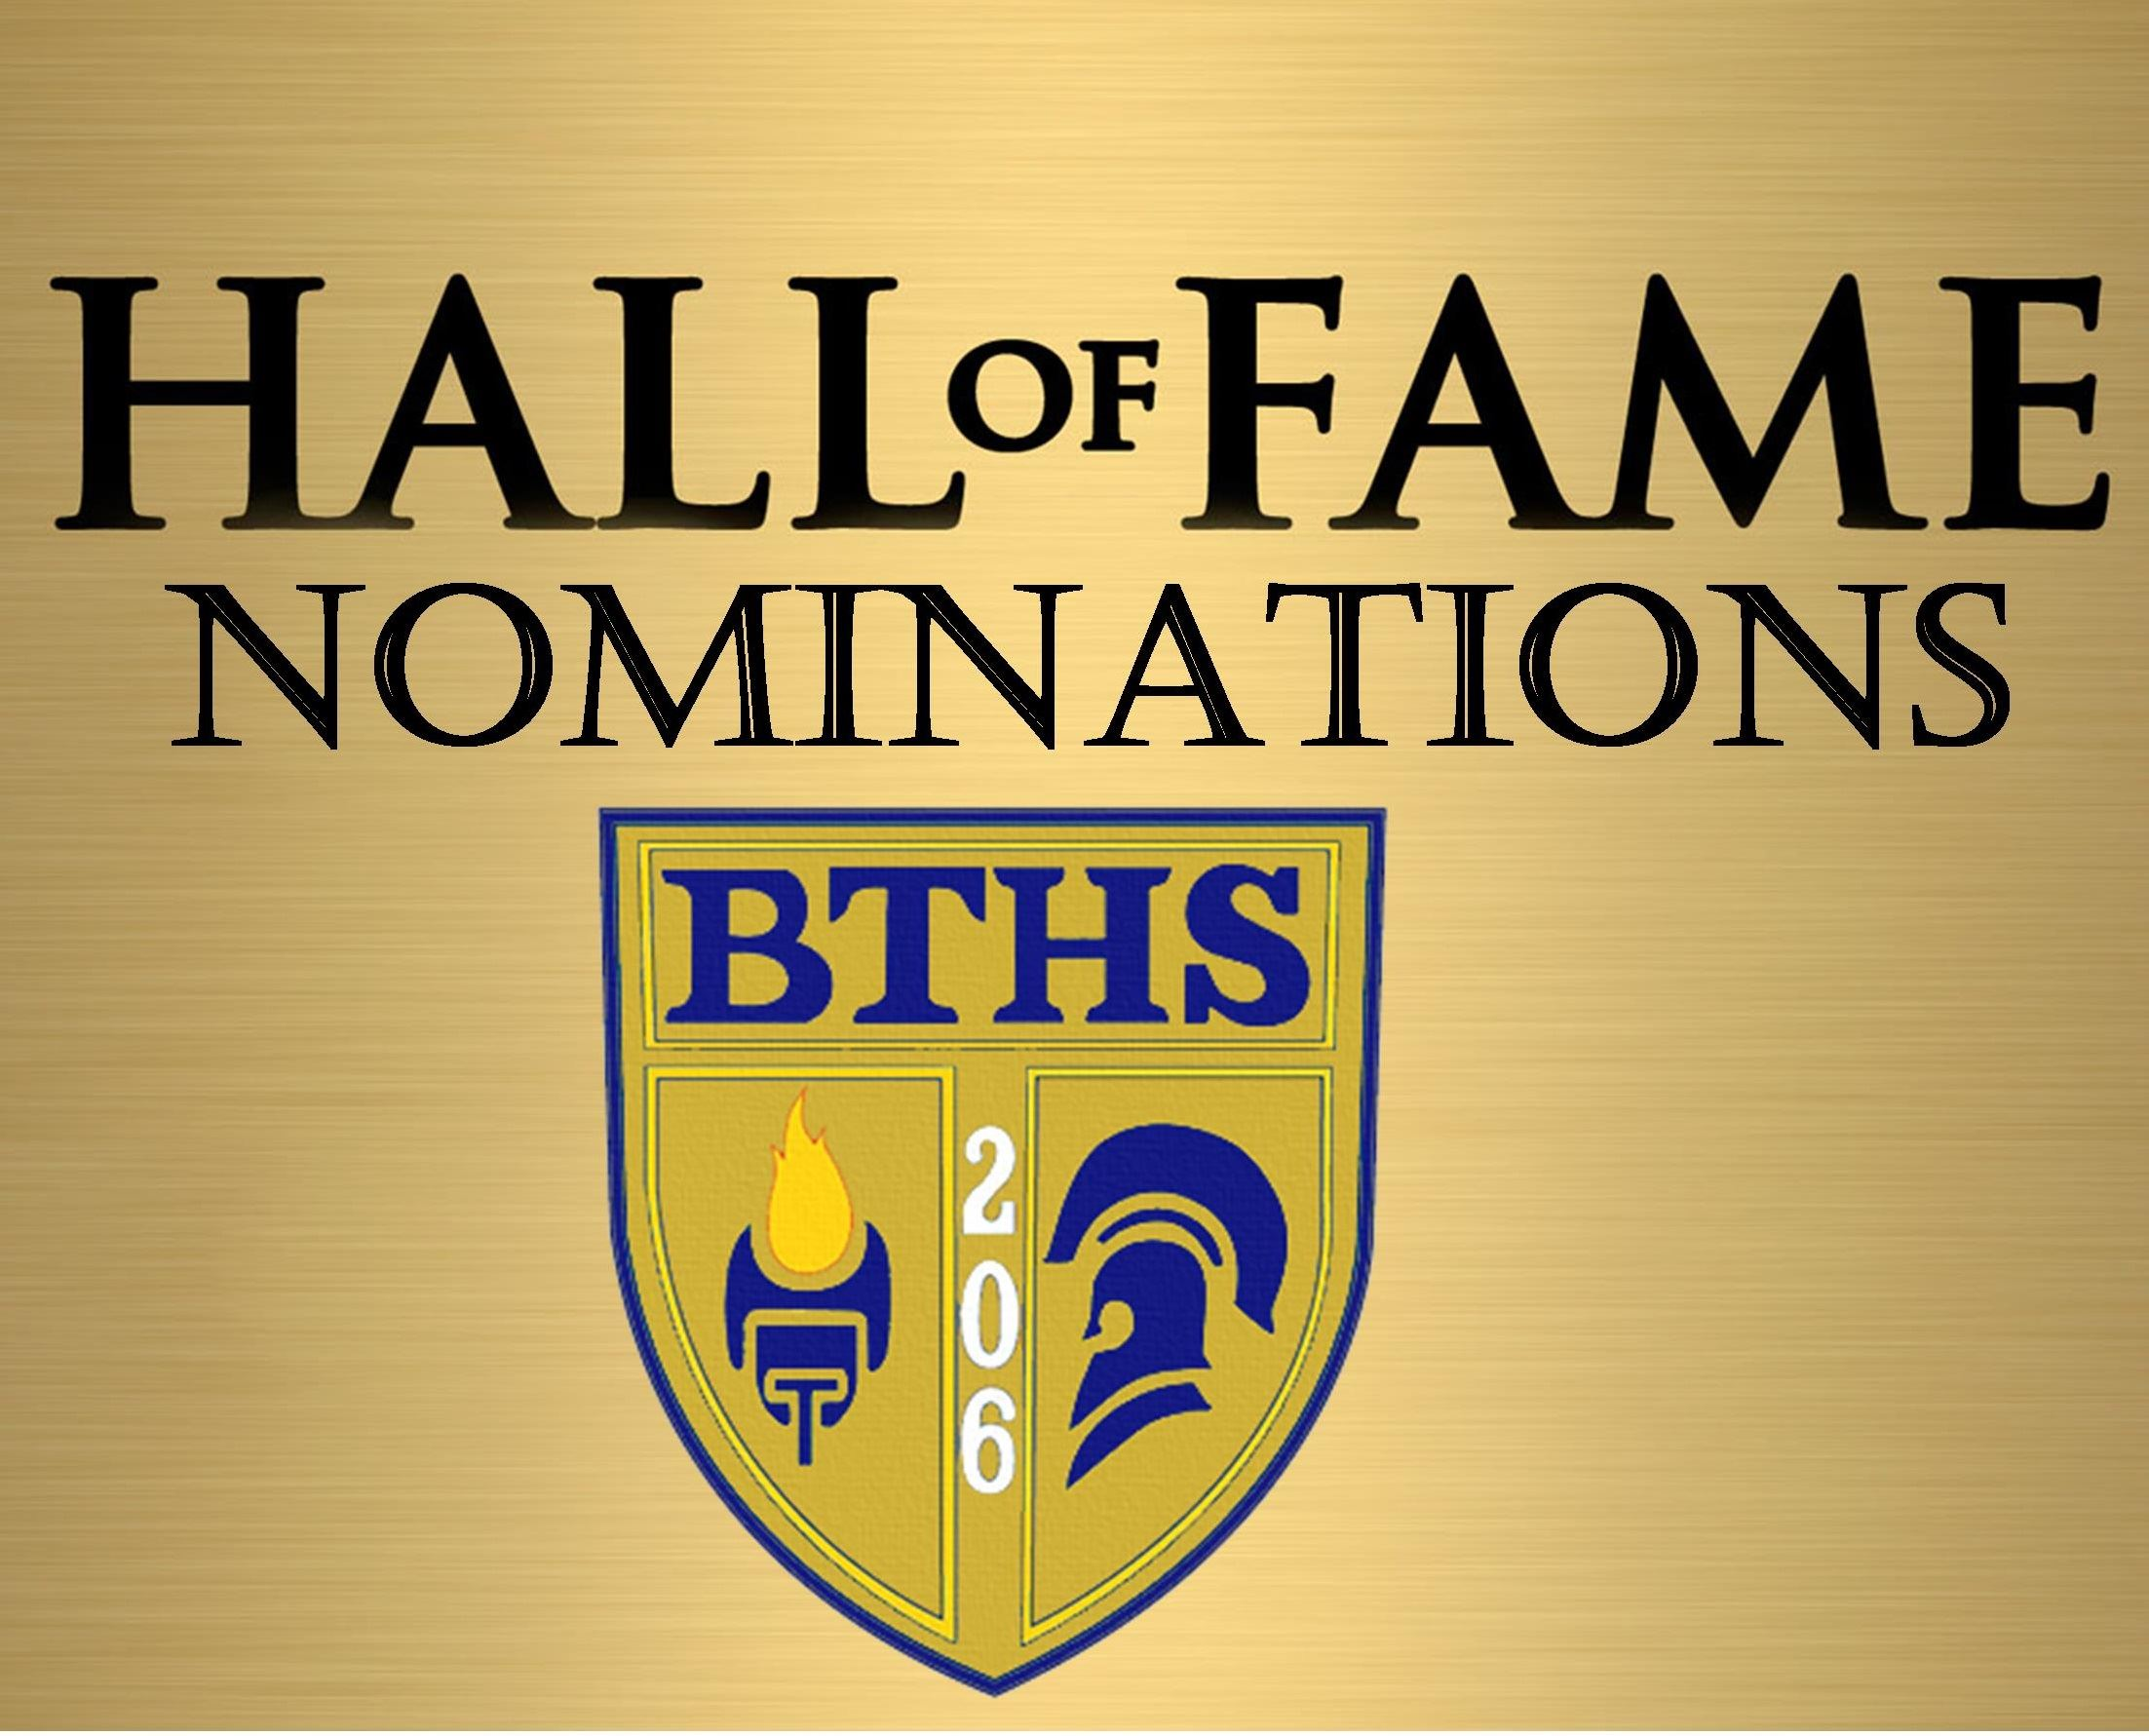 BTHS Hall of Fame Nominations